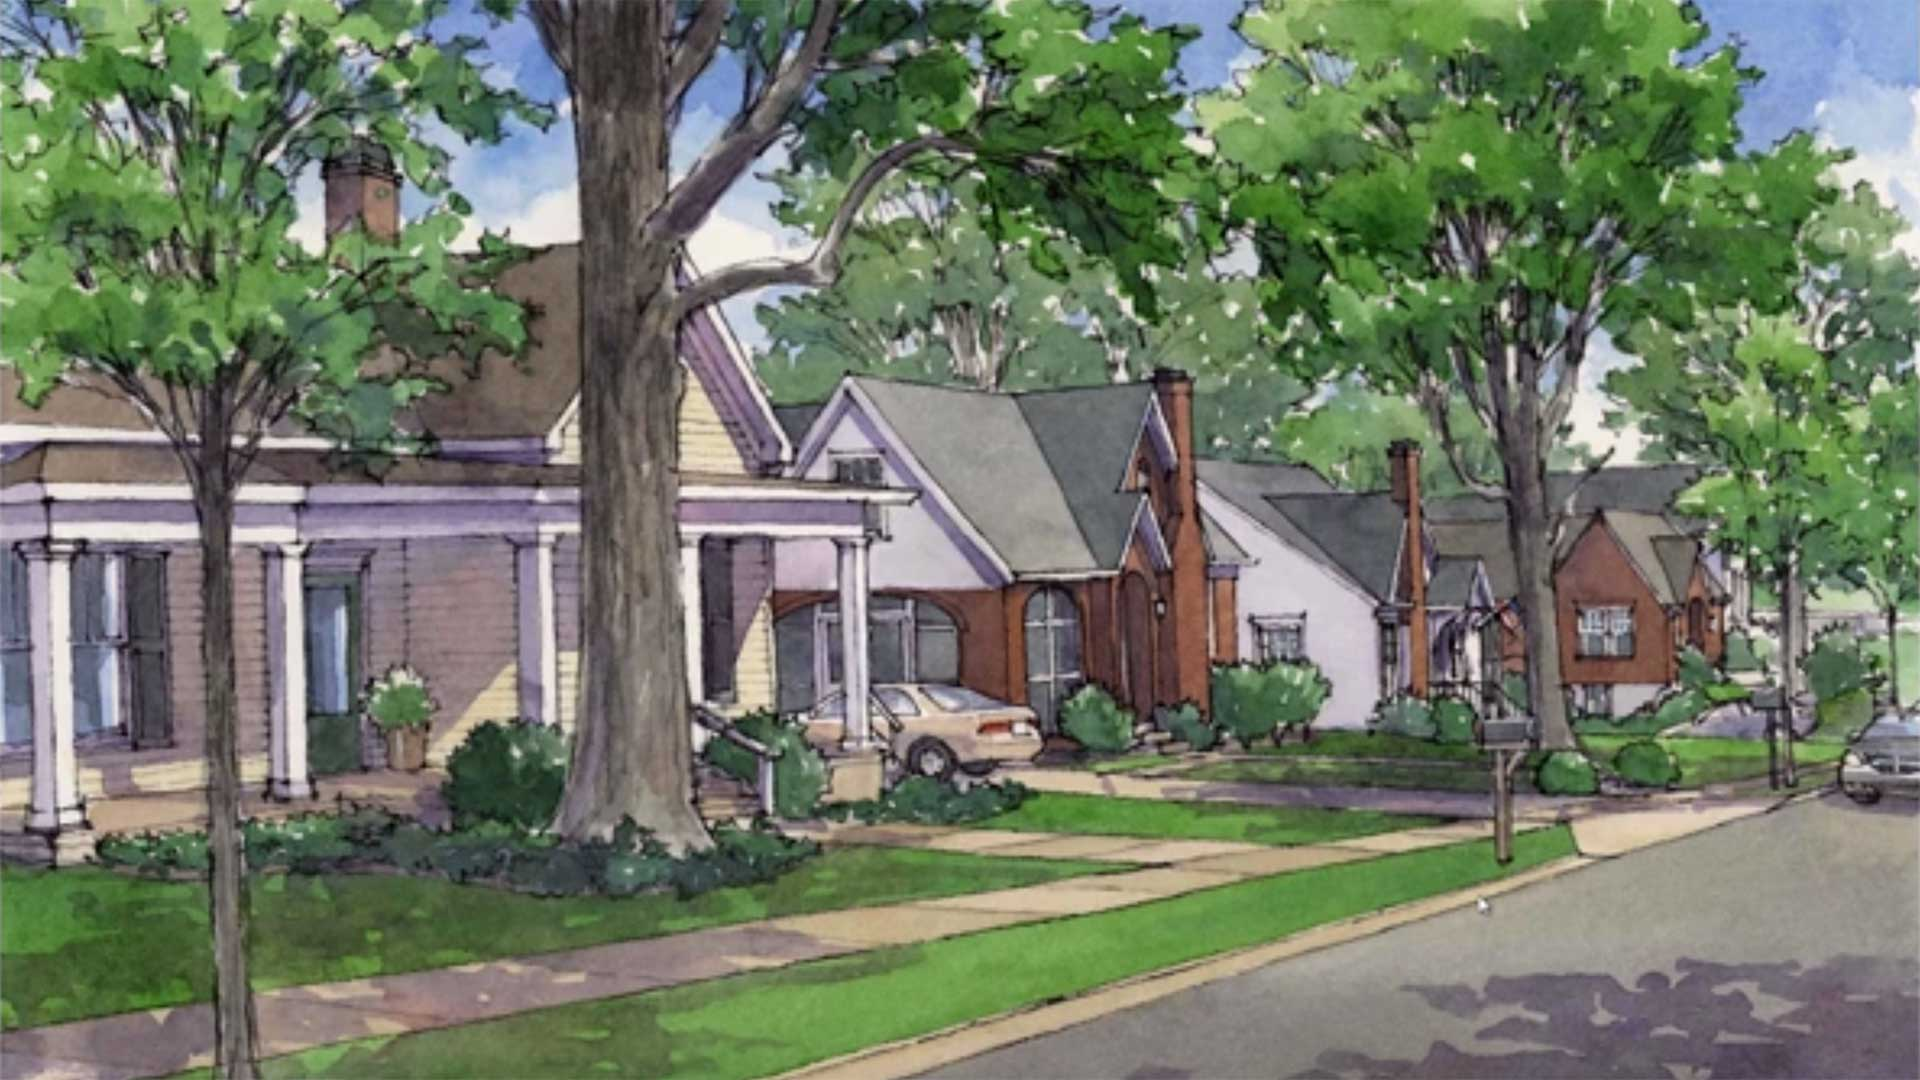 rendering of neighborhood